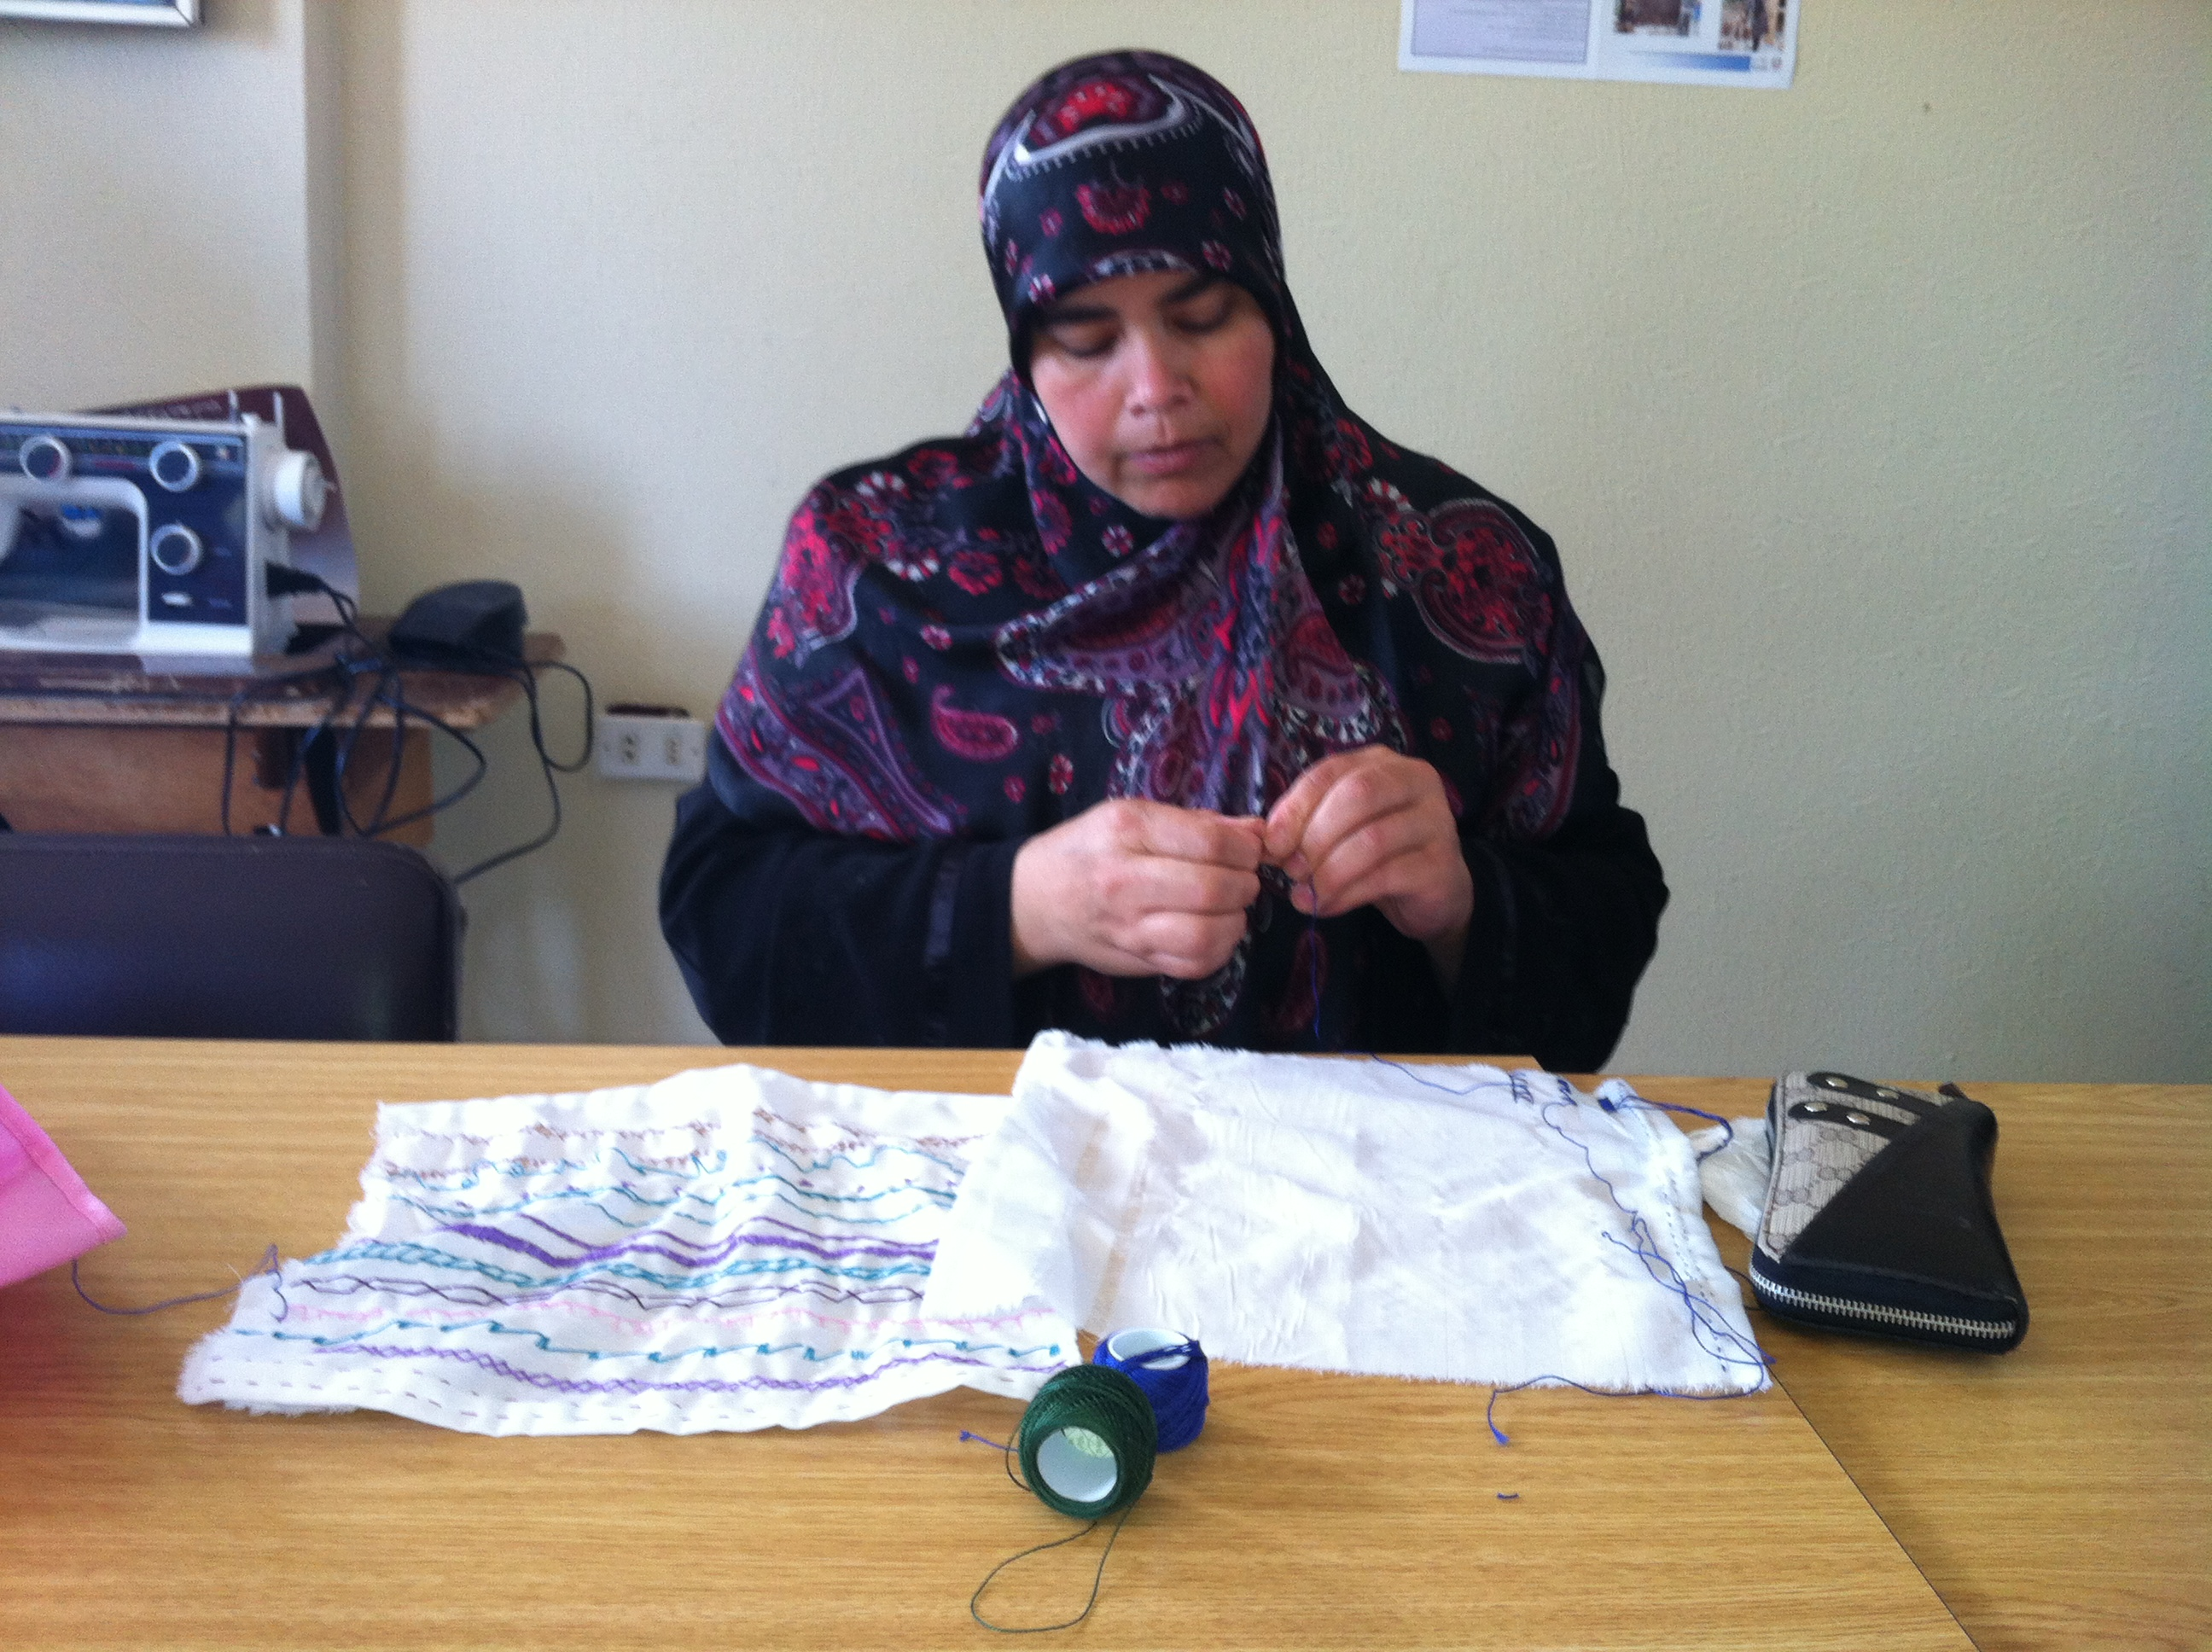 Mme. Izdihar Mahmoud Daoud - 44years old - A widowed mother of 2 children that is having her first experience in Tatreez